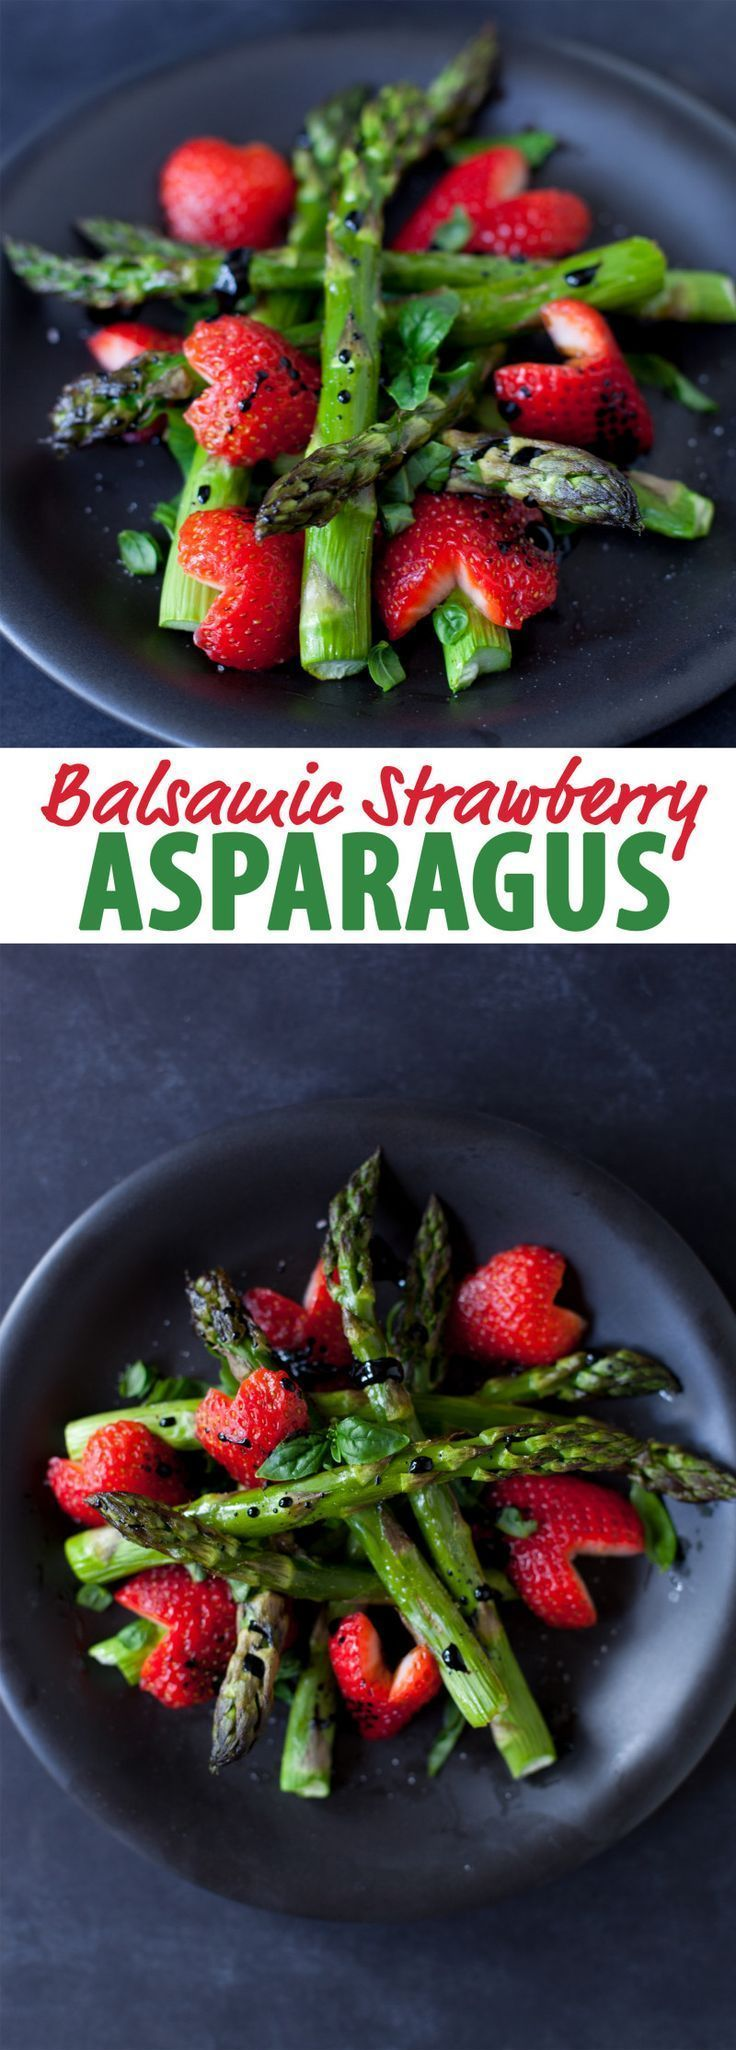 This balsamic strawberry asparagus recipe makes a gorgeous Christmas side dish that's vegan and gluten free. From http://EatingRichly.com